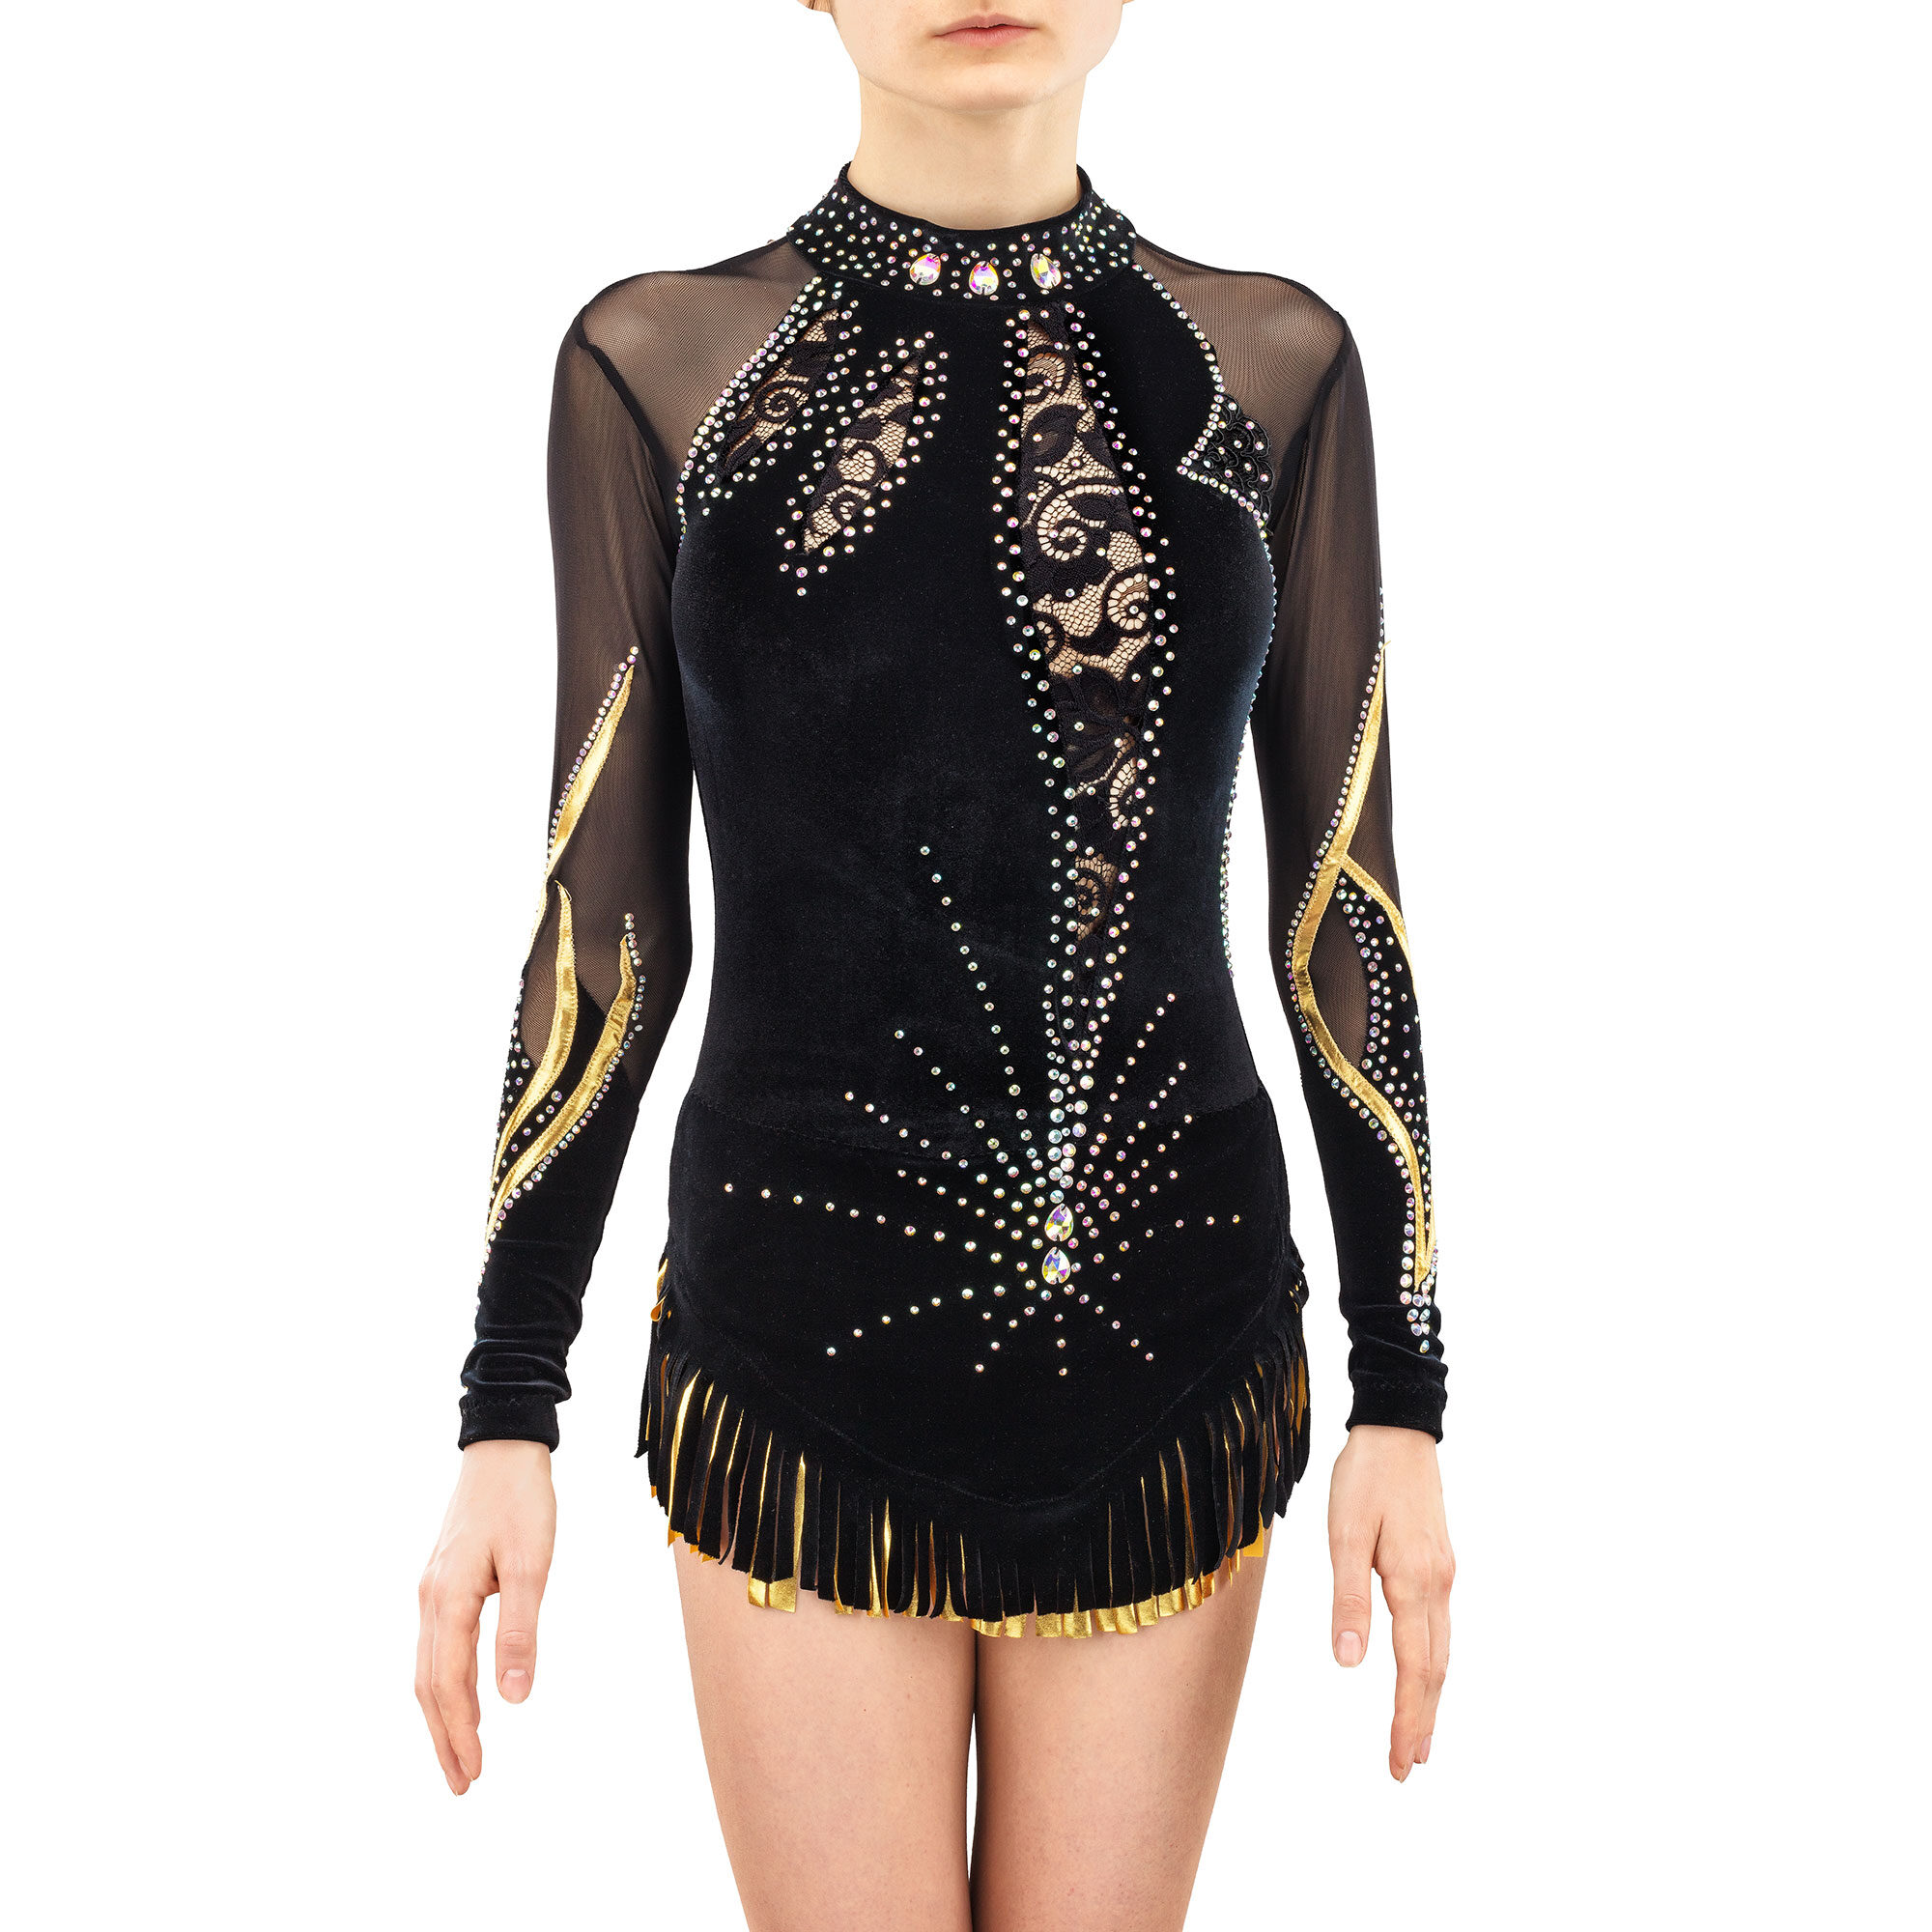 Velvet Rhythmic Gymnastics Leotard № 195 could be sewn as Rhythmic Gymnastics Dress, Ice Figure Skating Dress, Acrobatic Gymnastics Costume, Baton Twirling Suit or Dance Leotard. The costume consists of gold inserts and a ponytail fringe, made of lace inserts and a stand-up collar